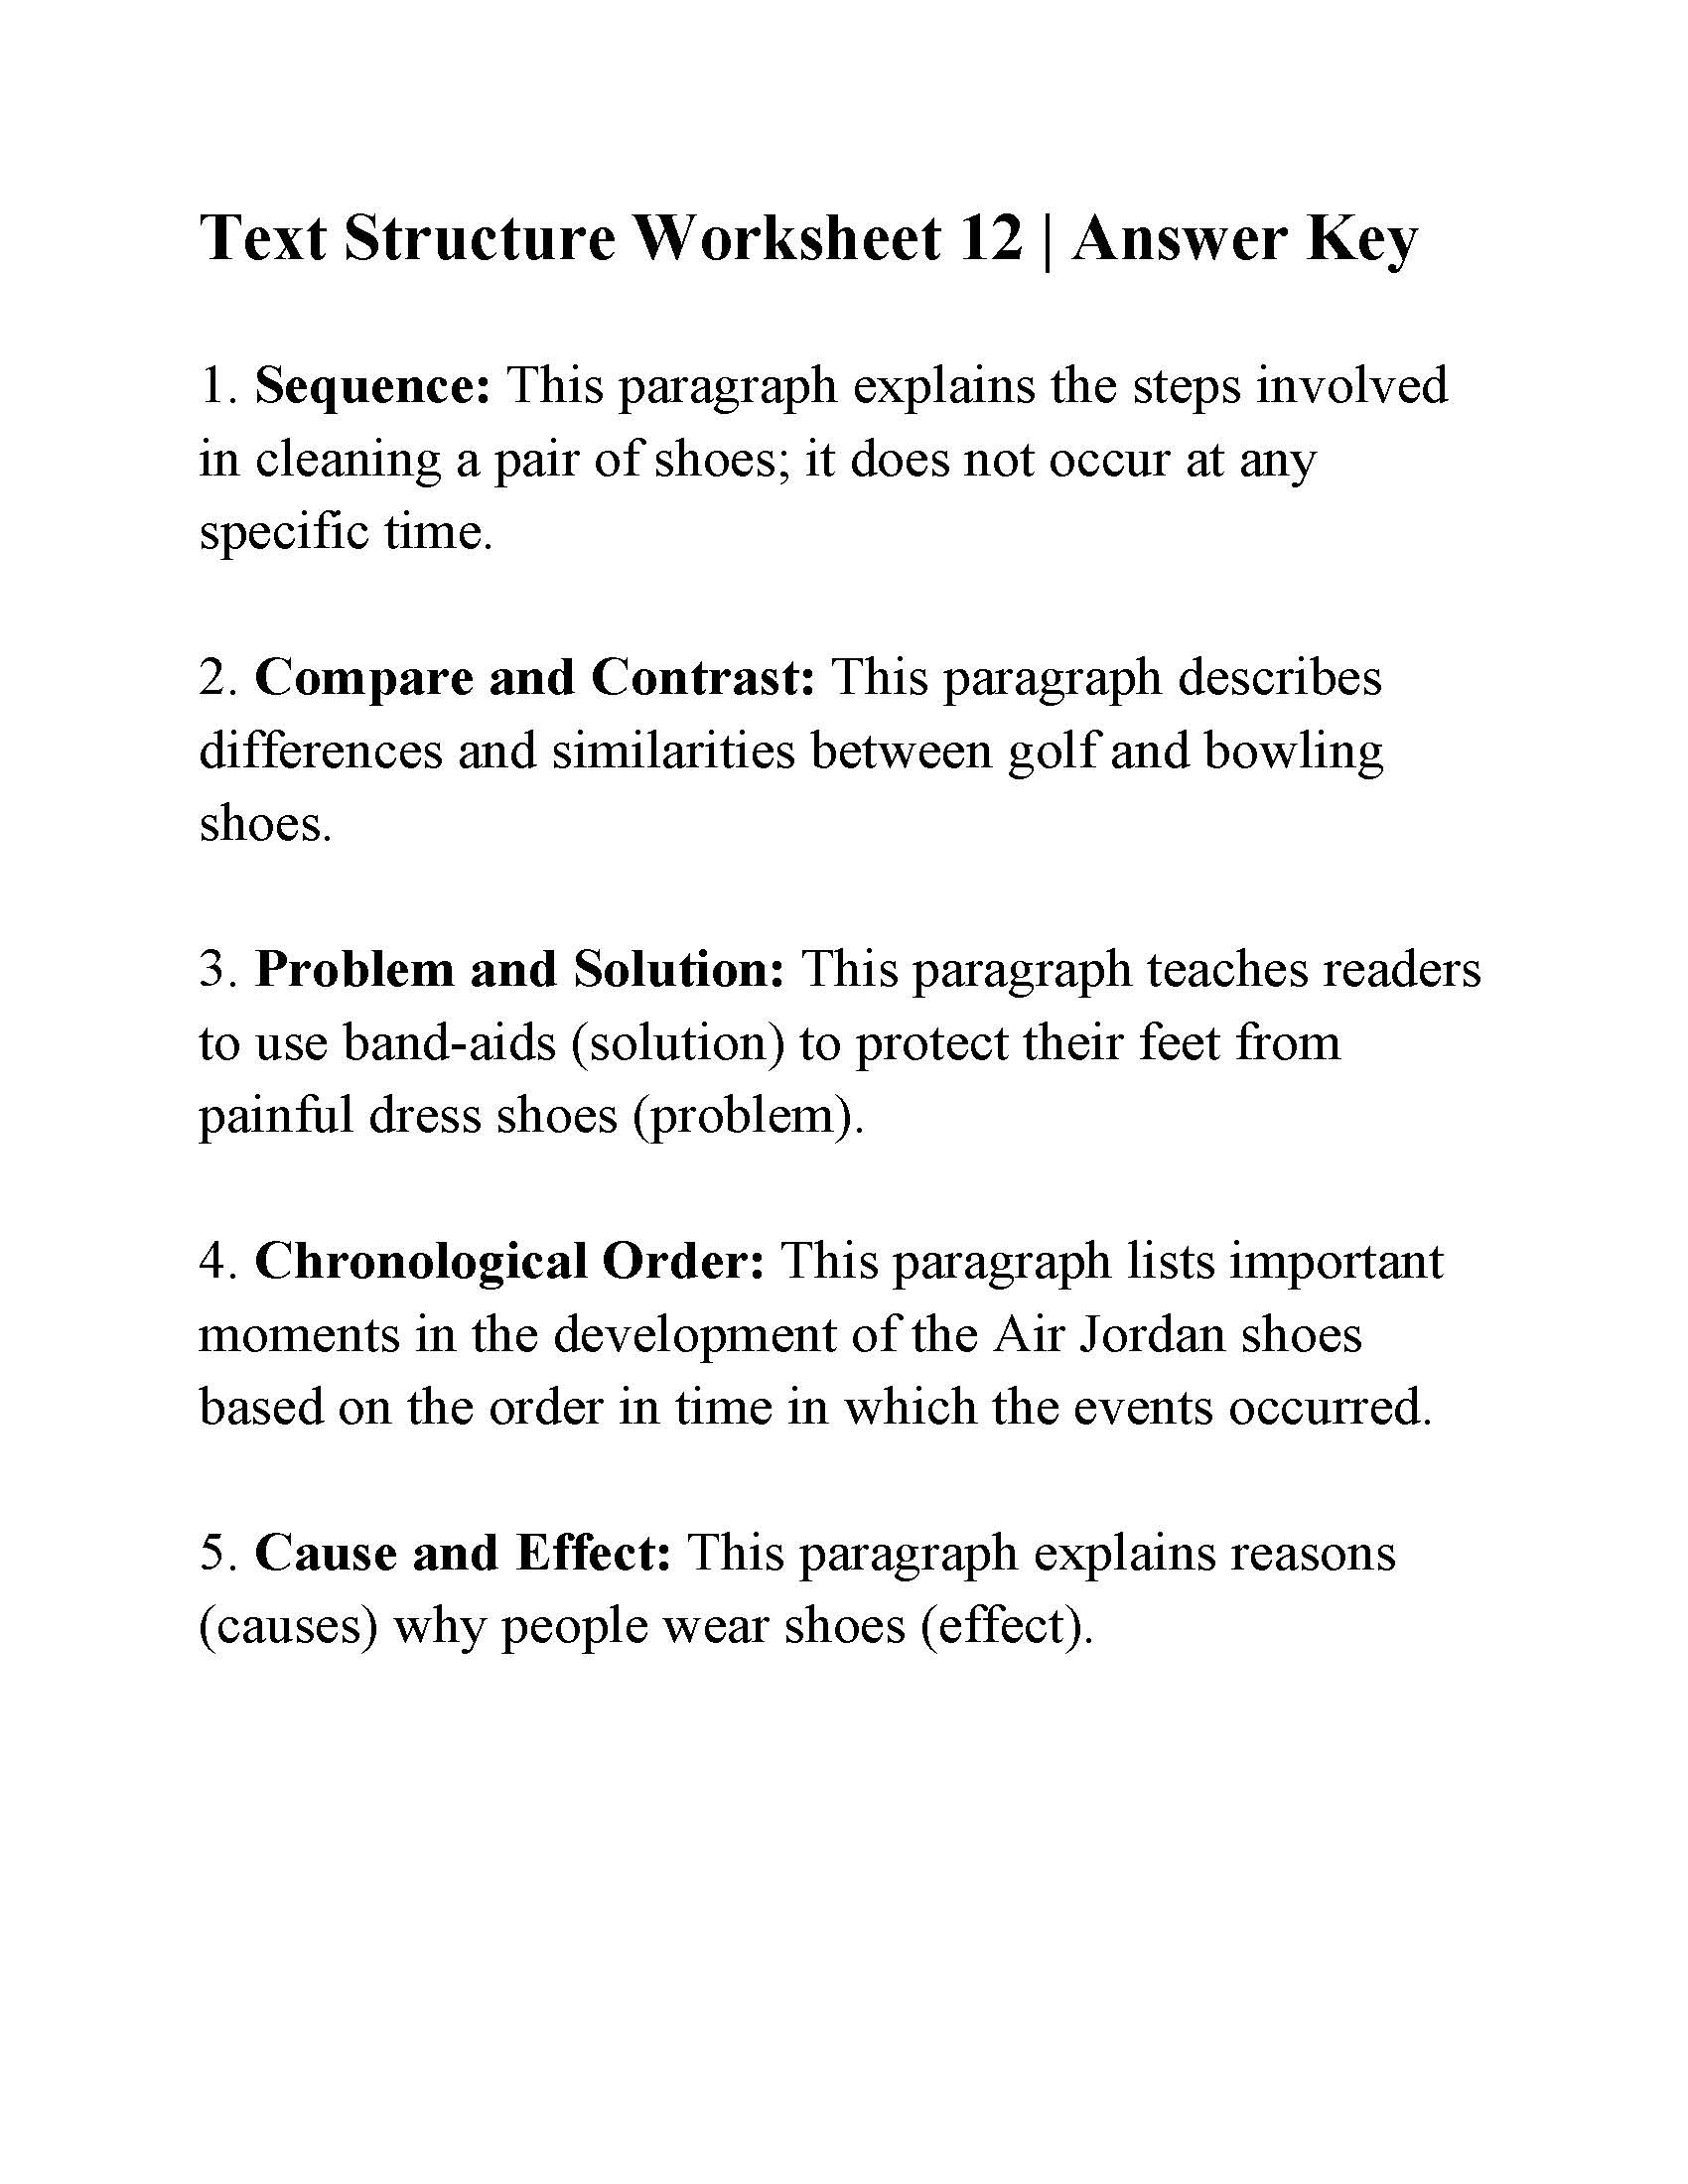 Text Structure 5th Grade Worksheets Text Structure Worksheet Answers Worksheets Math Sum solver